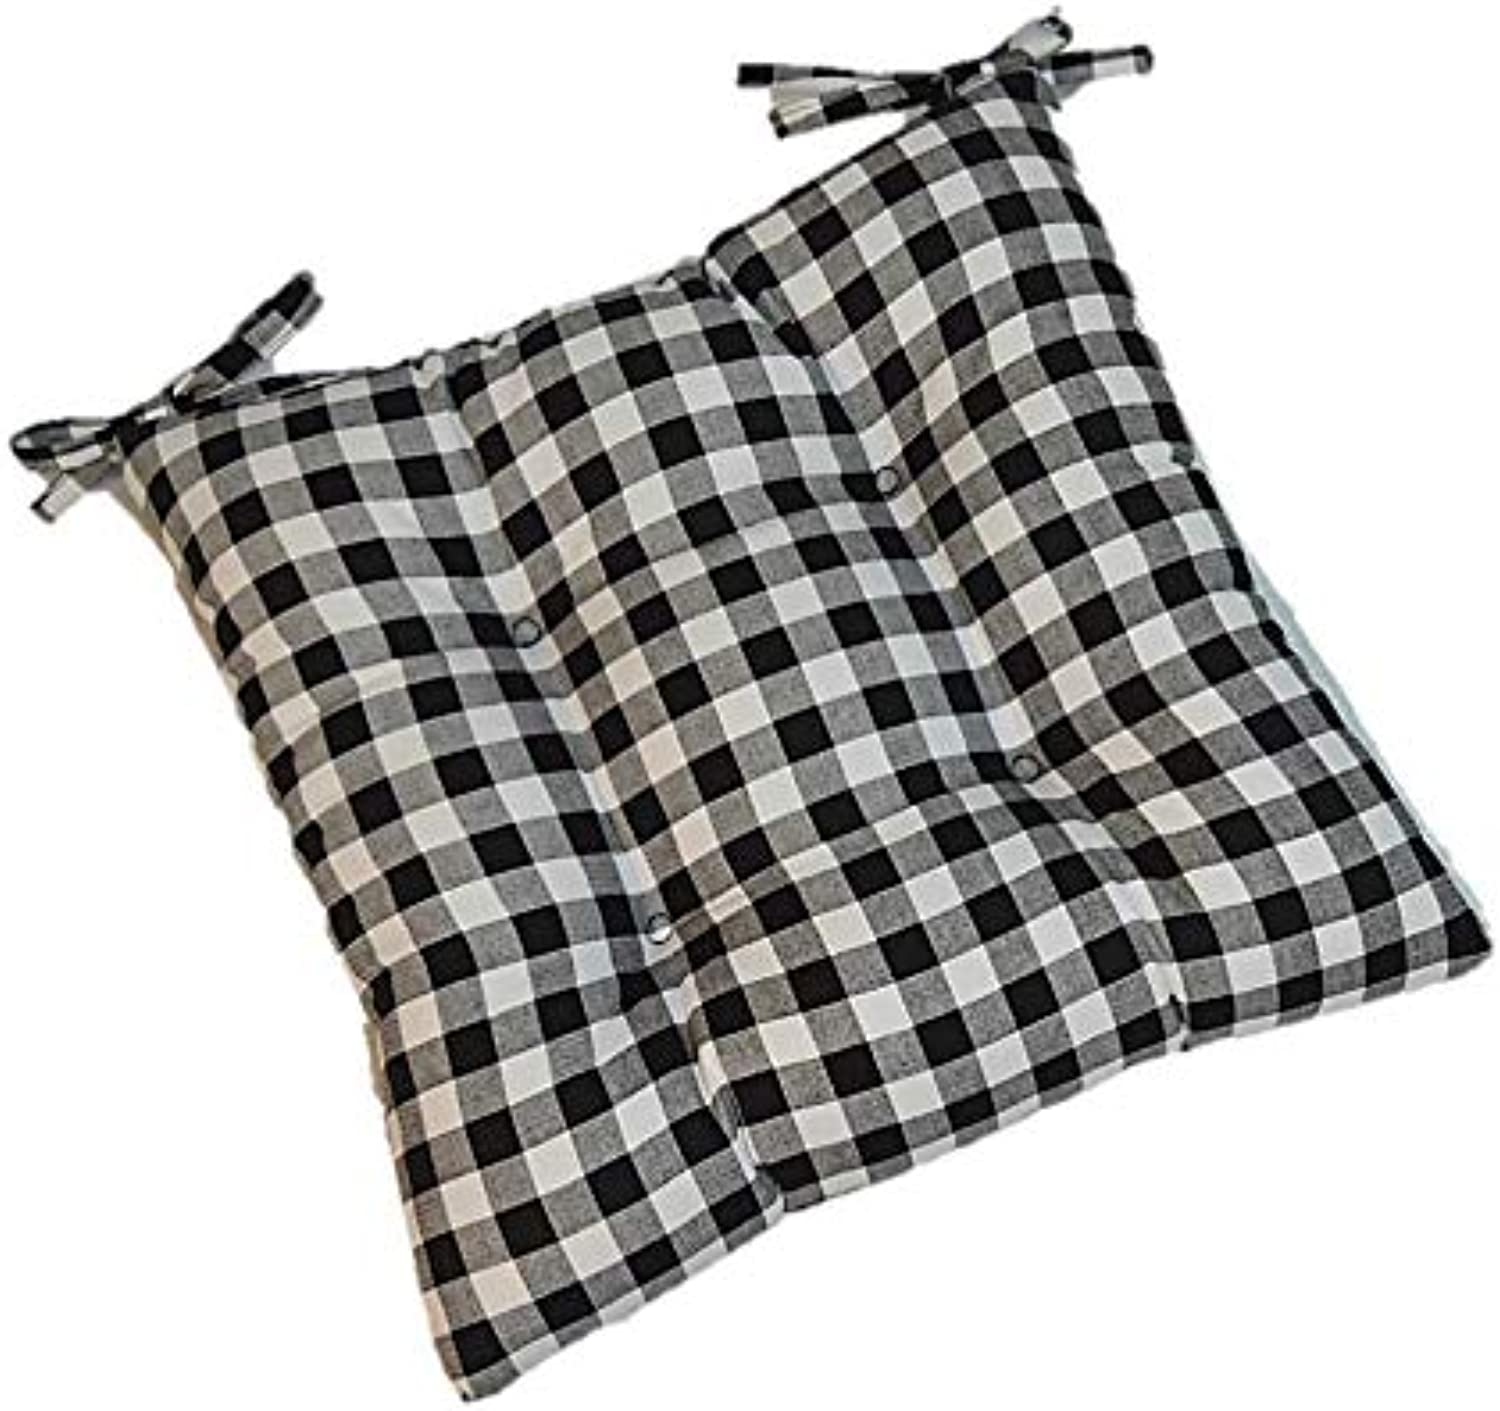 Rera Shop New Black Plaid Gingham Tufted Seat Cushion for Kitchen Dining Chair (22 x21 )